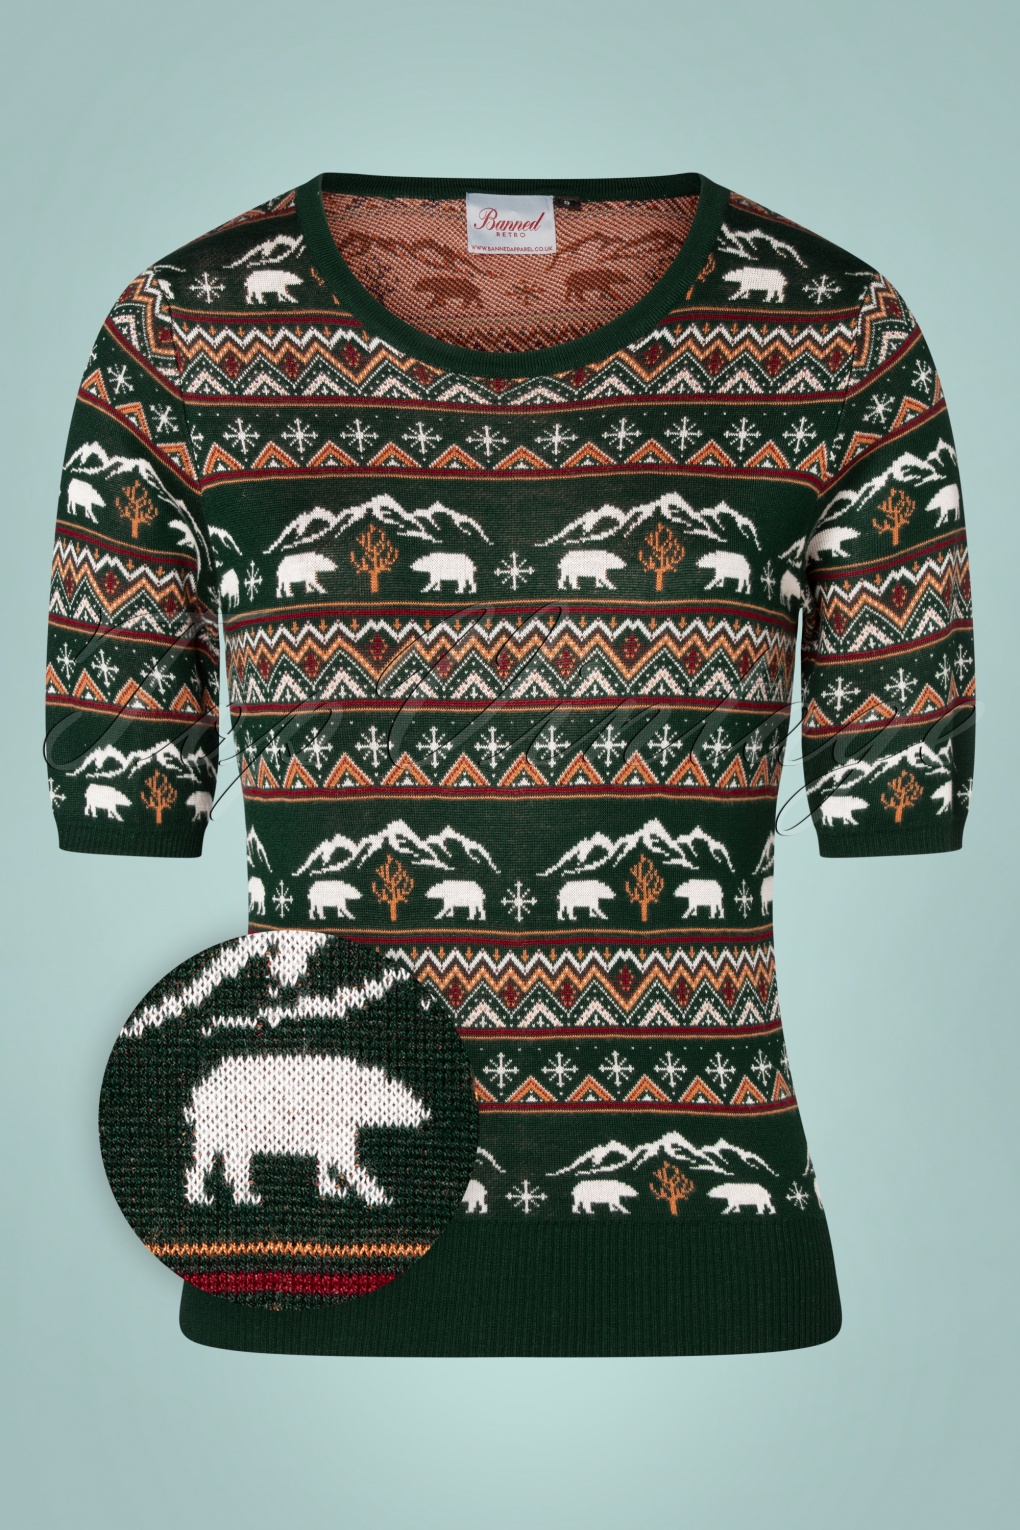 Vintage Sweaters, Retro Sweaters & Cardigan 50s Christmas Bear Jumper in Green £36.42 AT vintagedancer.com